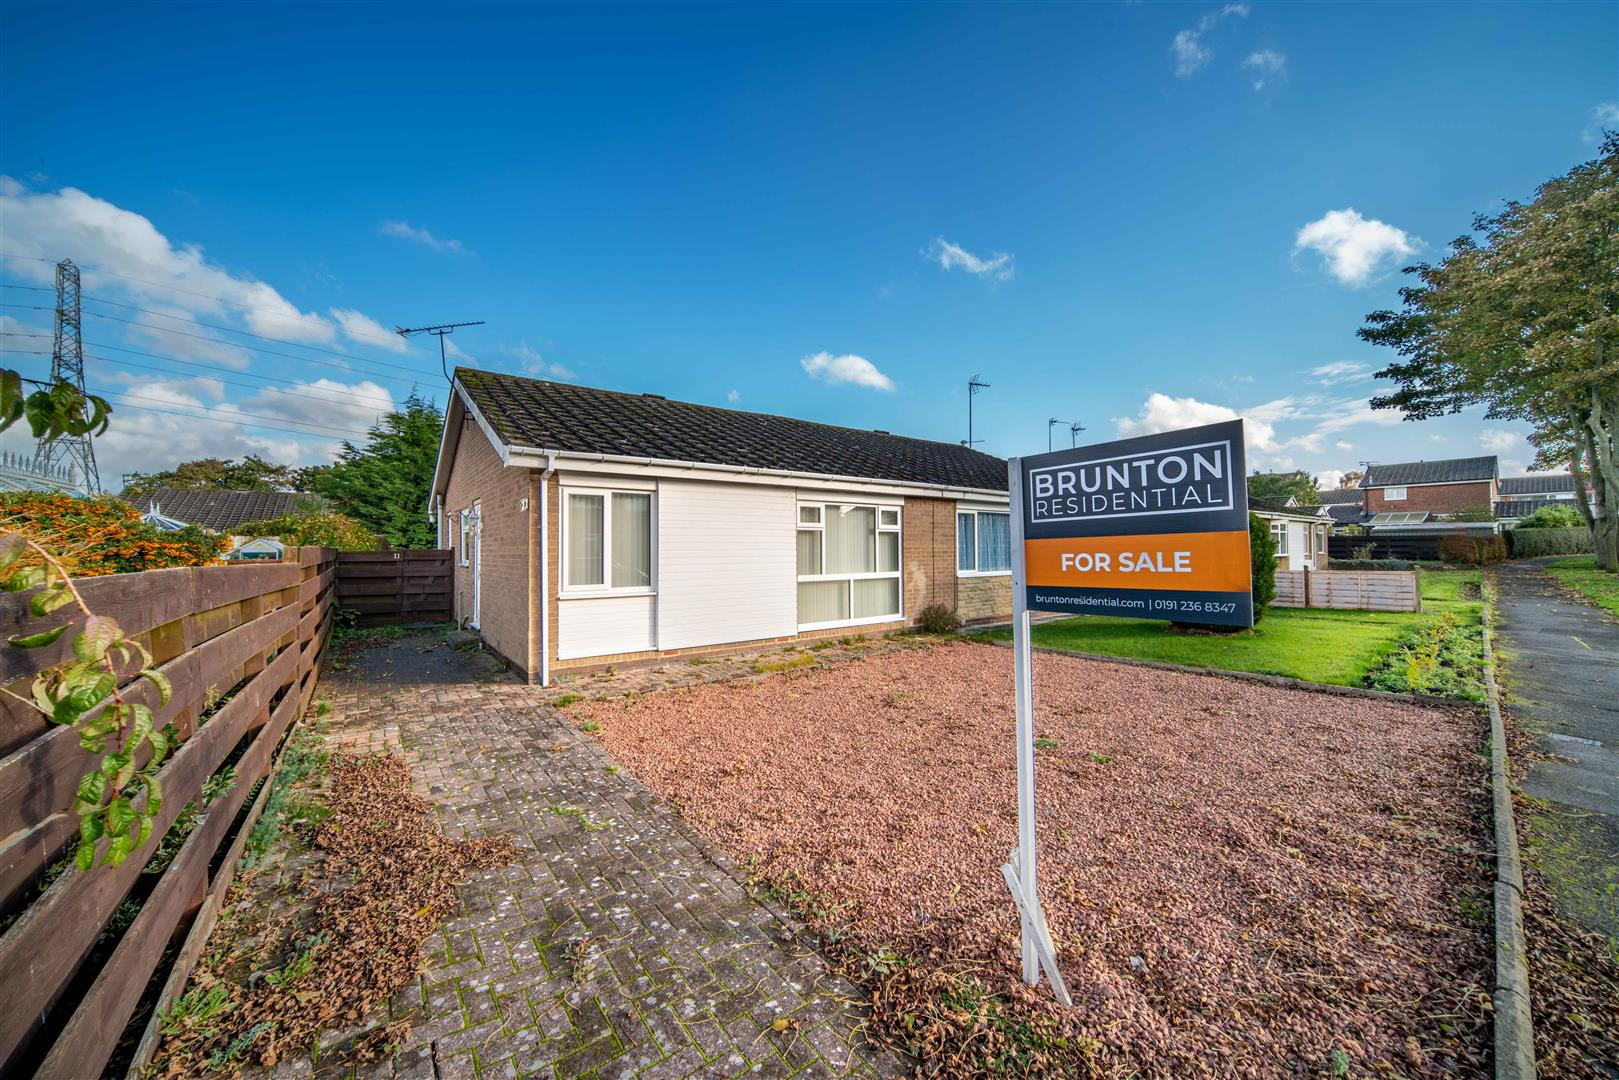 2 bed semi-detached bungalow for sale in Newcastle Upon Tyne, NE13 7HA, NE13